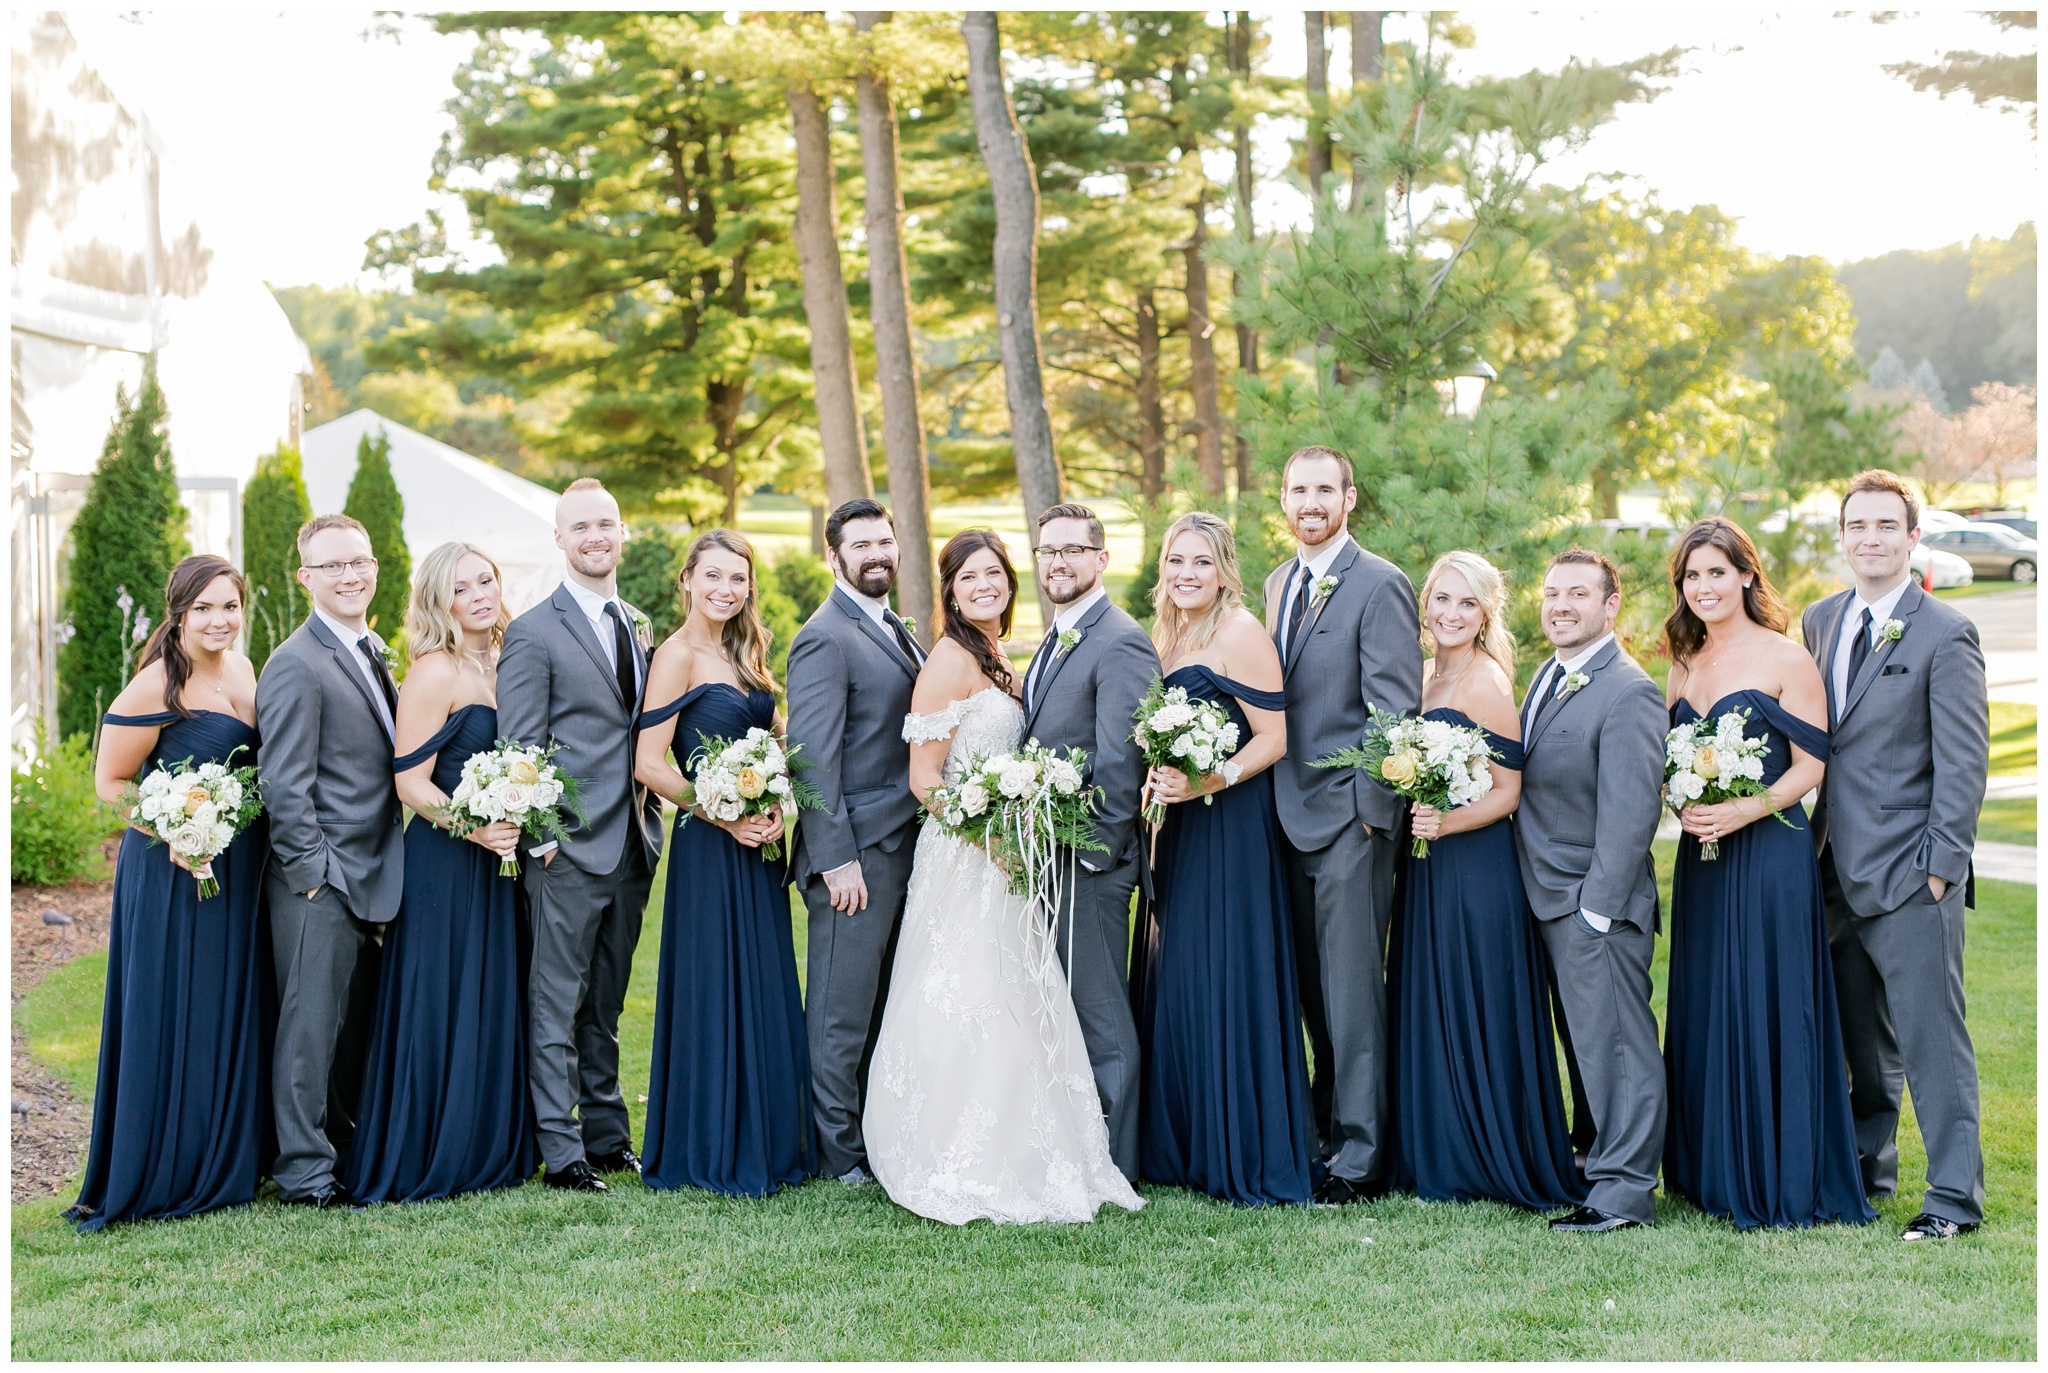 bishops_bay_country_club_wedding_middleton_wisconsin_caynay_photo_4717.jpg